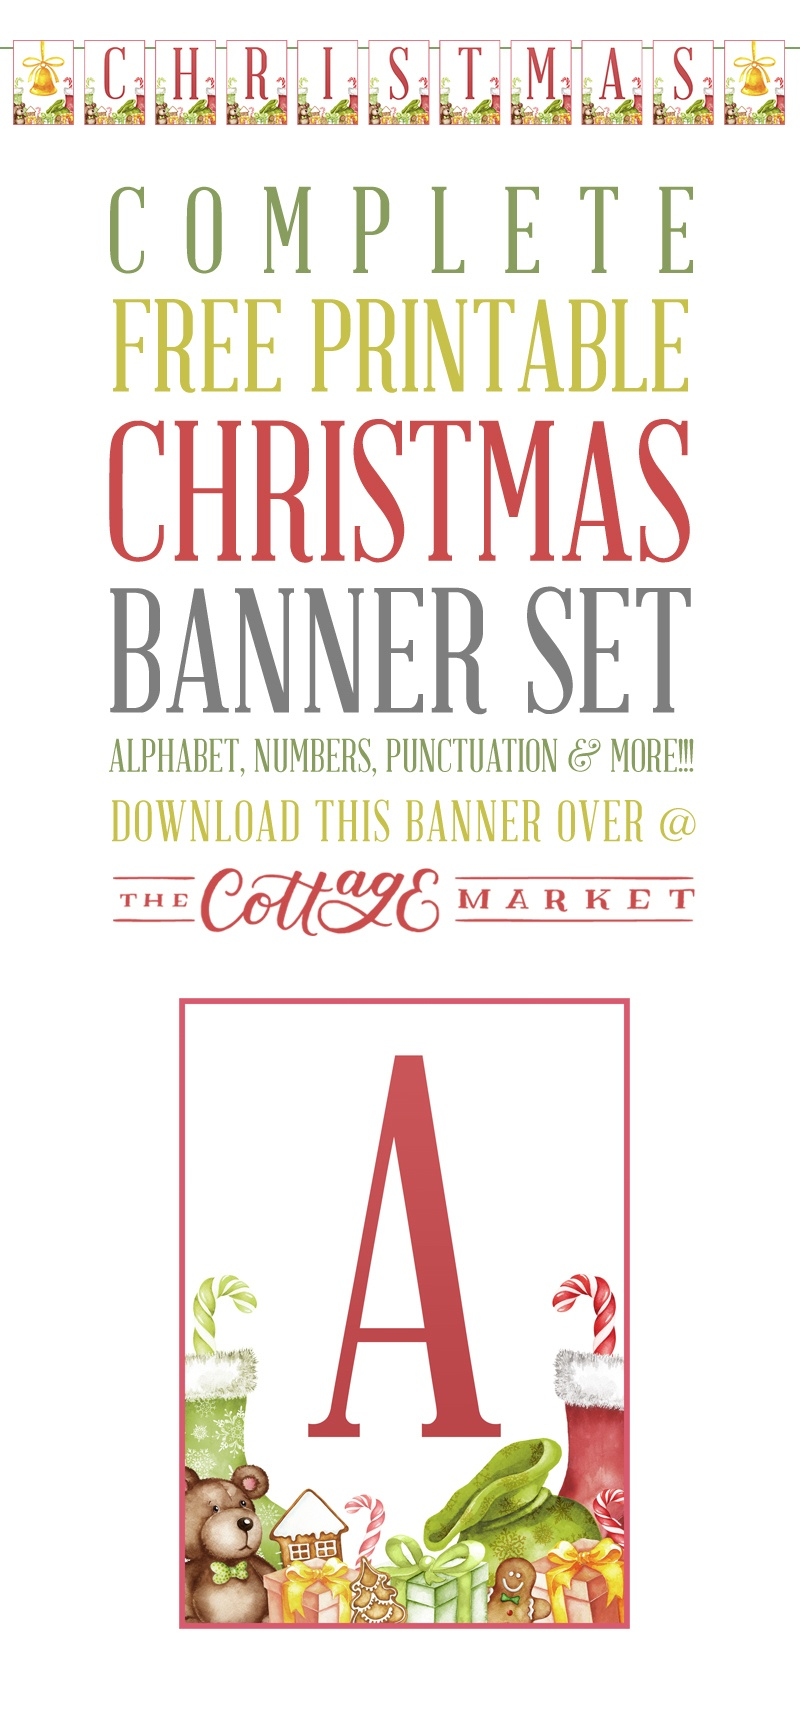 Complete Free Printable Christmas Banner Set - The Cottage Market - Free Printable Christmas Alphabet